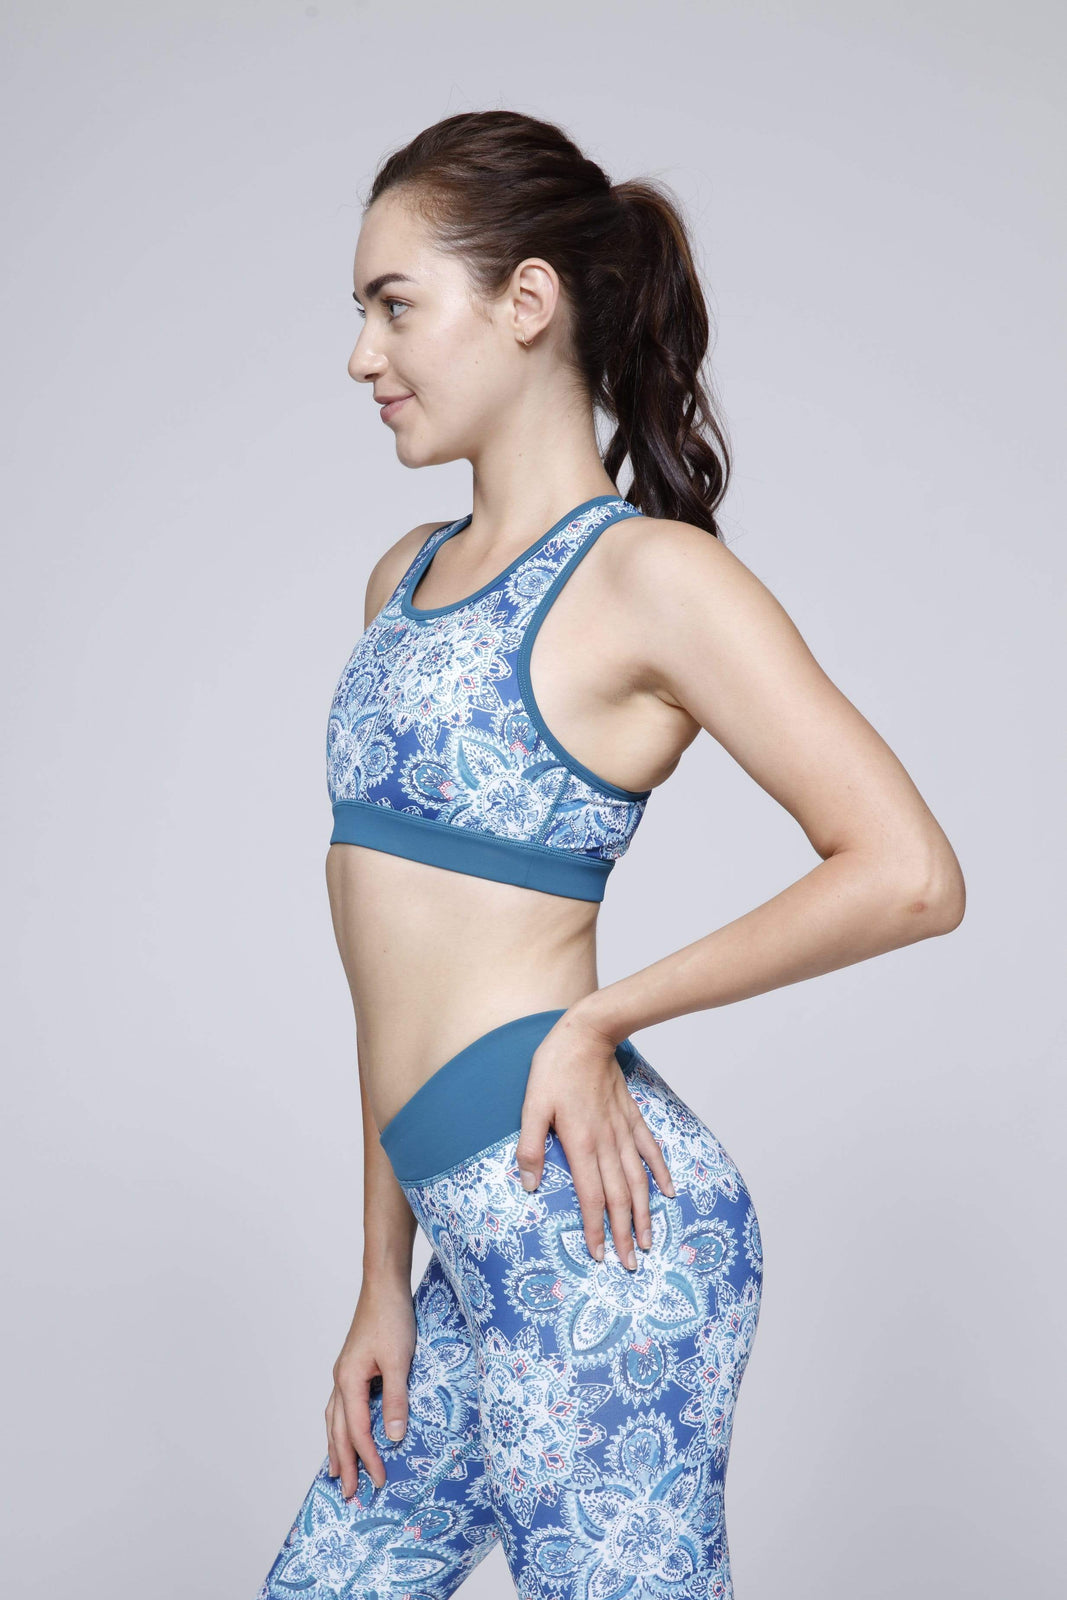 Medallion Sports Bra in Blue Coral Medallion